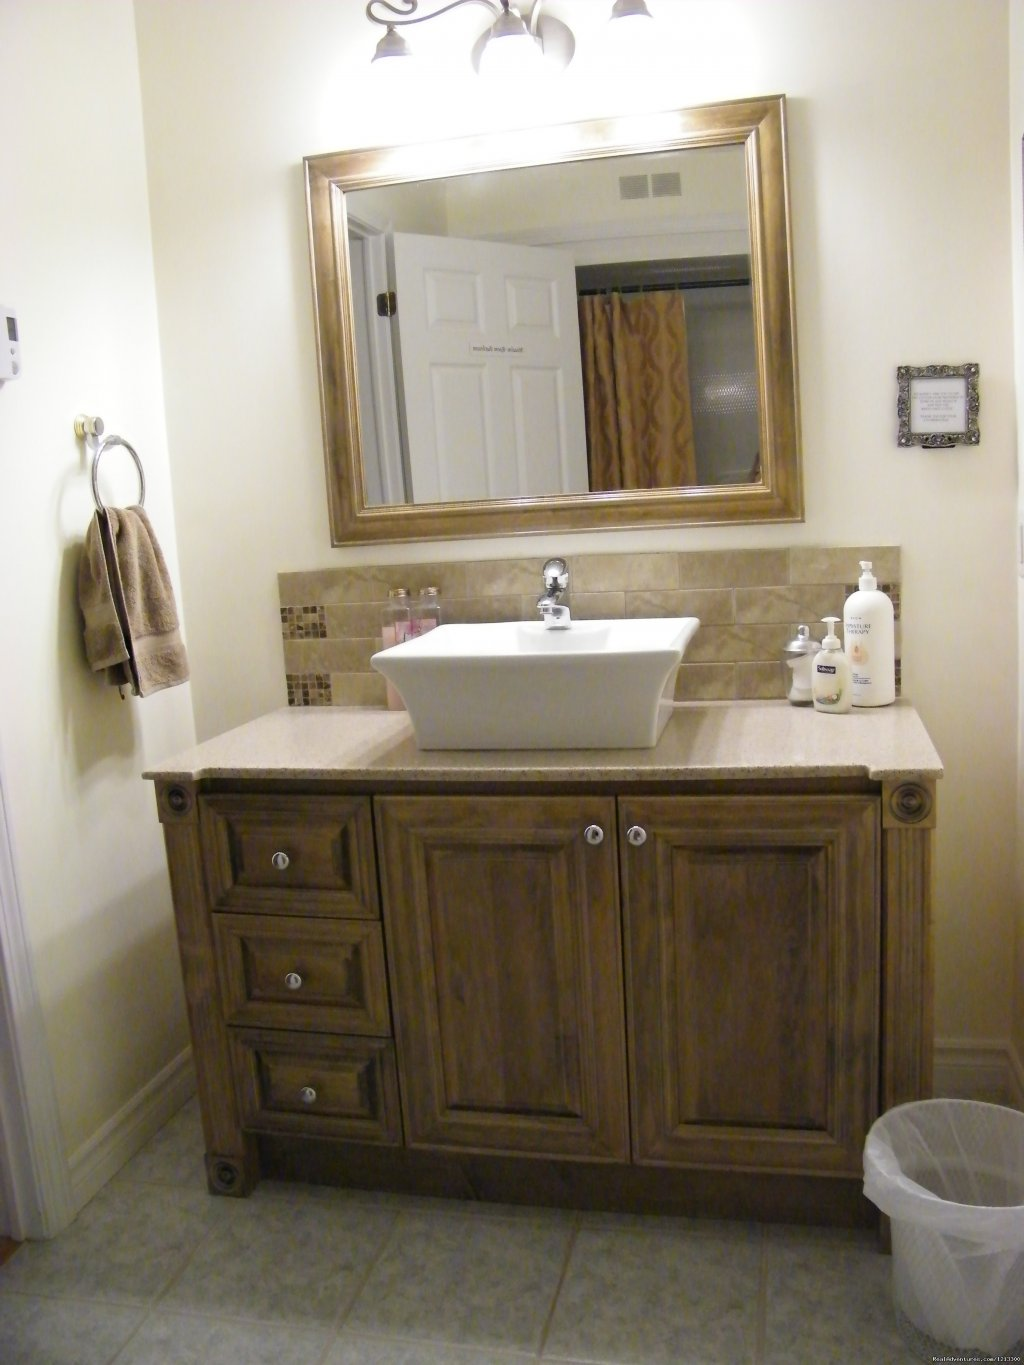 The meadow bathroom | Image #3/19 | Warm english hospitality at Coverdale B&B